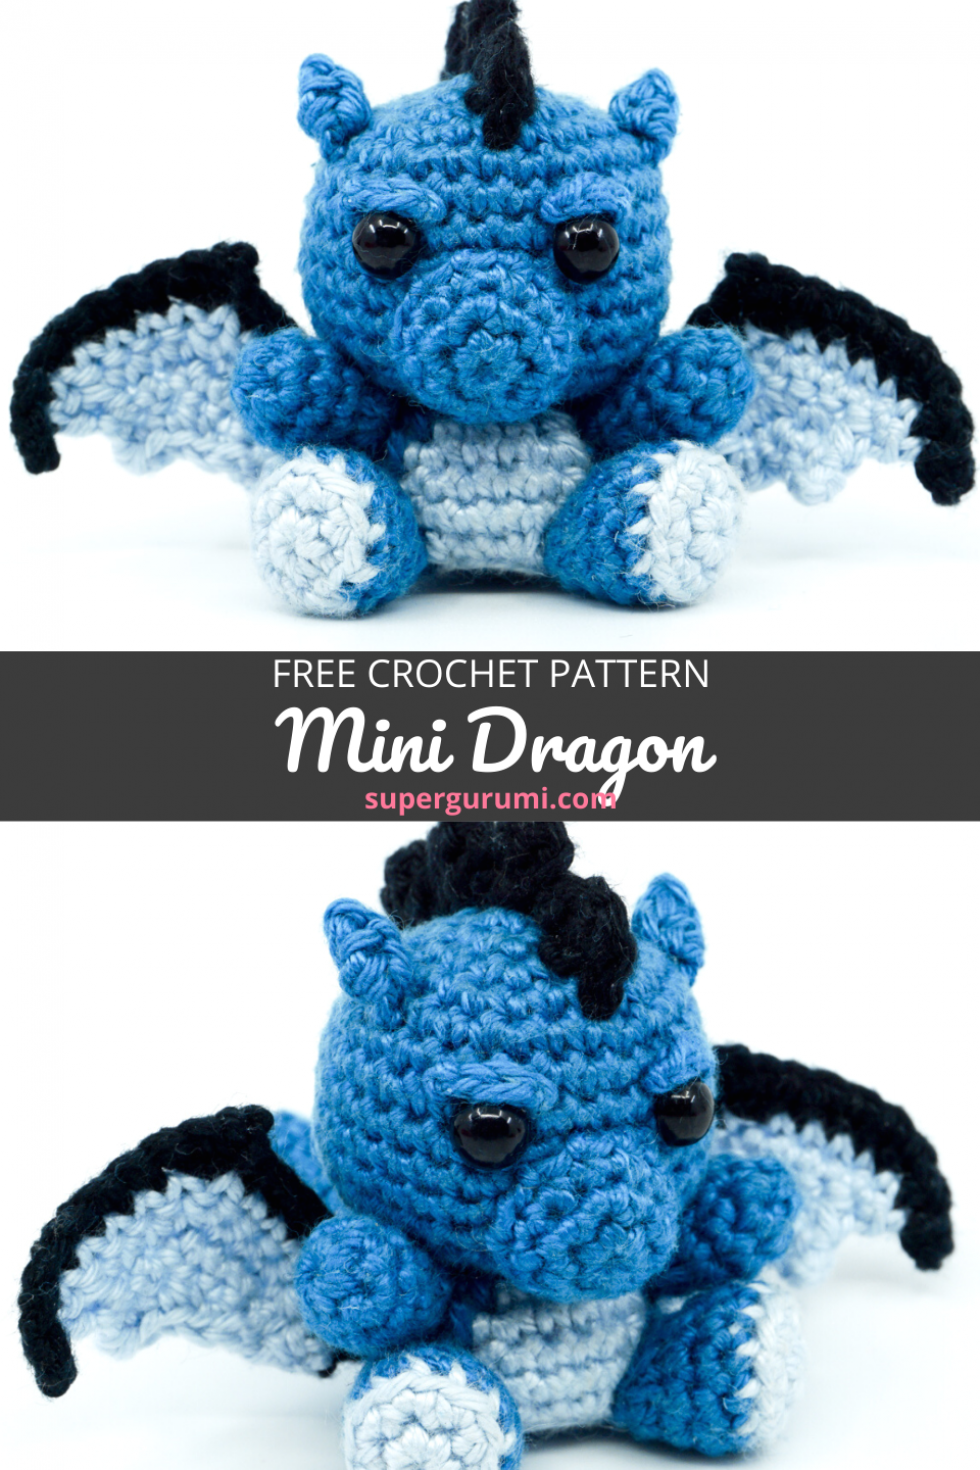 Free Amigurumi Mini Dragon Crochet Pattern